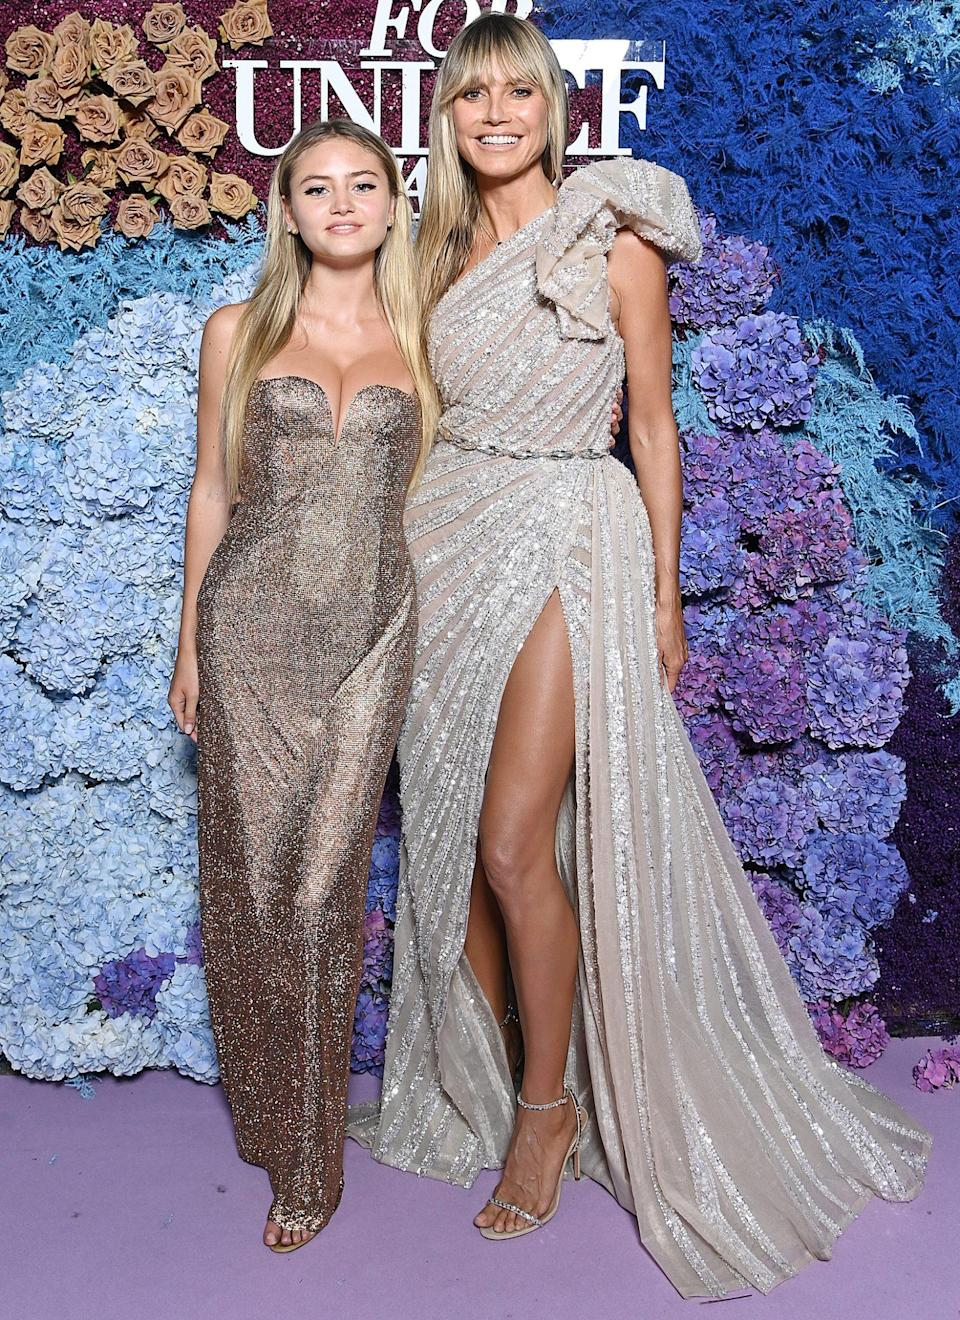 """<p><a href=""""https://people.com/style/heidi-klum-walks-unicef-red-carpet-with-daughter-leni/"""" rel=""""nofollow noopener"""" target=""""_blank"""" data-ylk=""""slk:coordinate in glittery gowns"""" class=""""link rapid-noclick-resp"""">coordinate in glittery gowns</a>. Leni wears a high-shine Versace gown with sweetheart-style neckline and an open back, while Heidi sparkles in a one-shoulder belted Elie Saab gown with a side slit and train. </p>"""